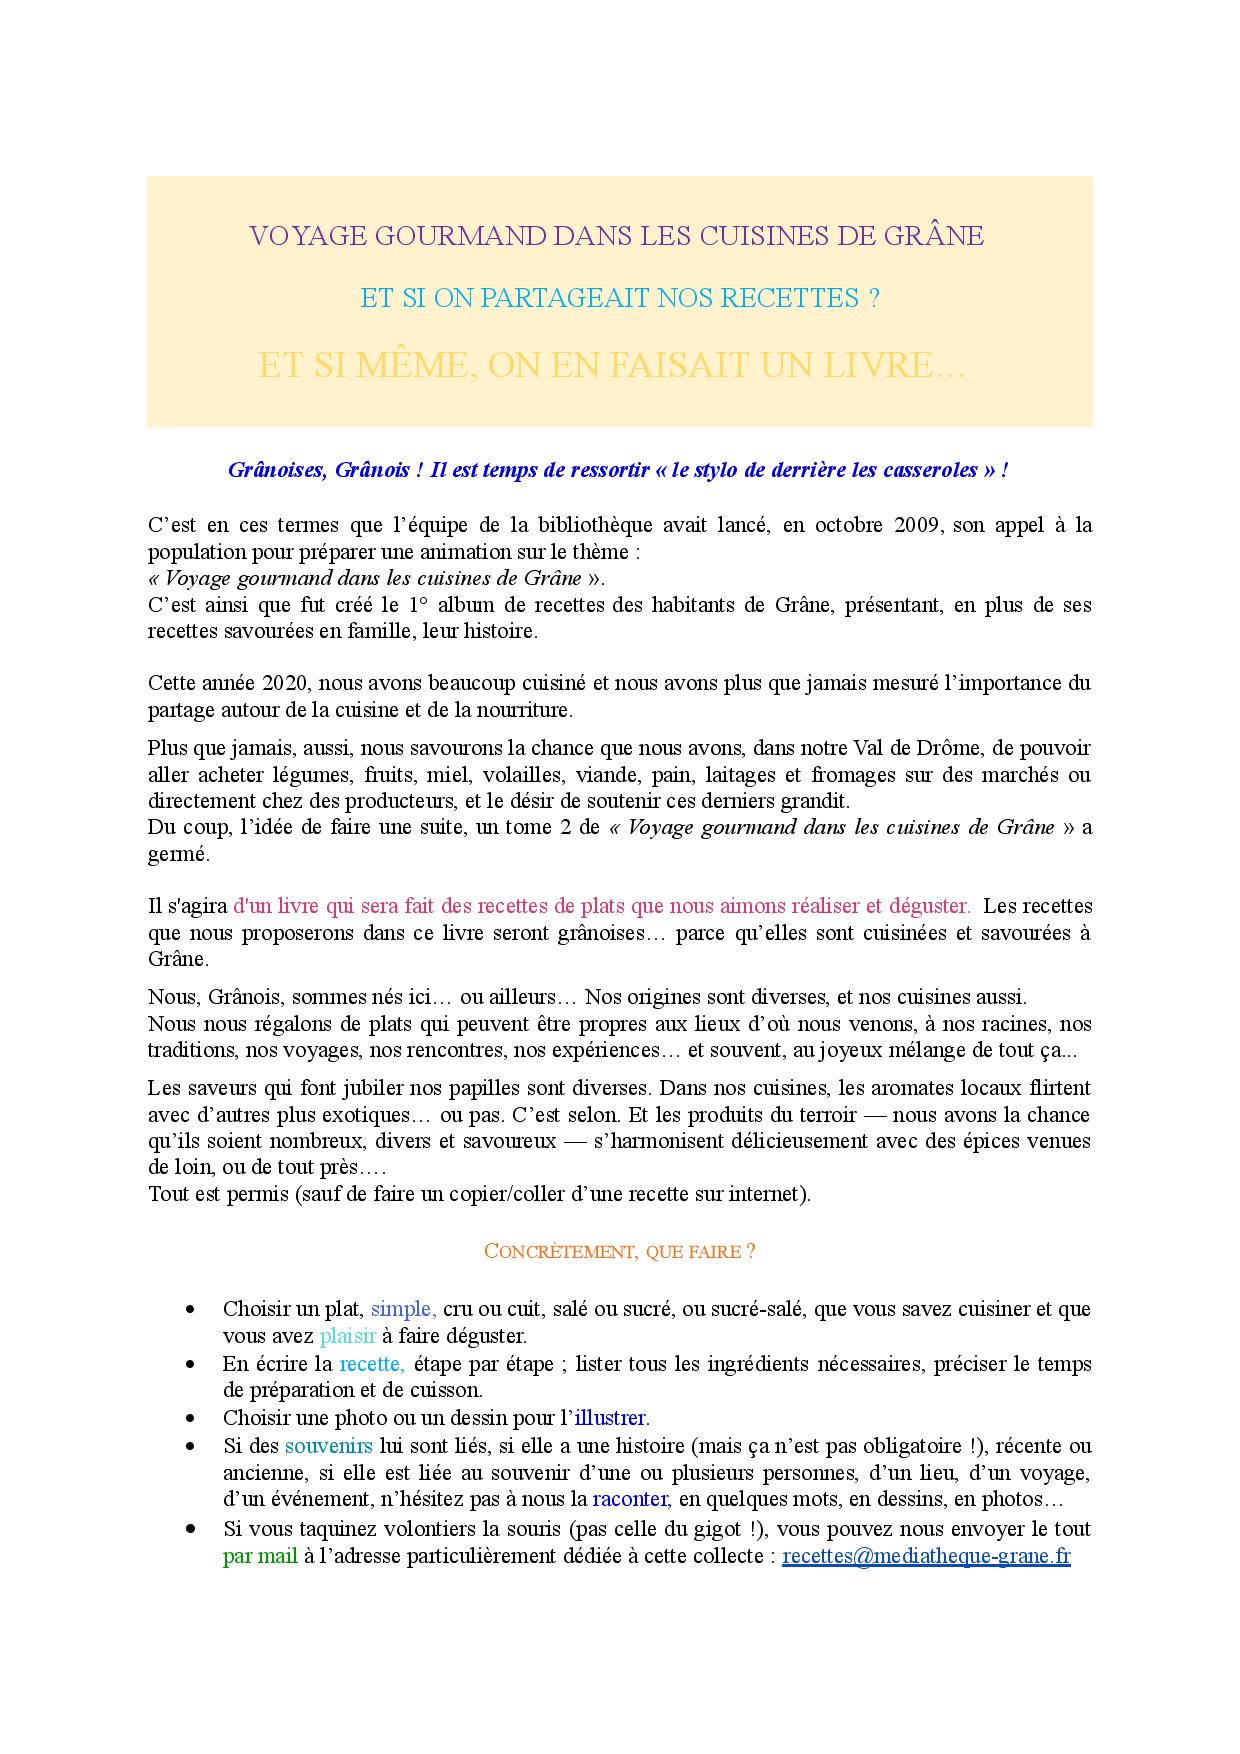 2021-03-26-Voyage gourmand-CuisinesGRANE-Couleurs-page-001.jpg